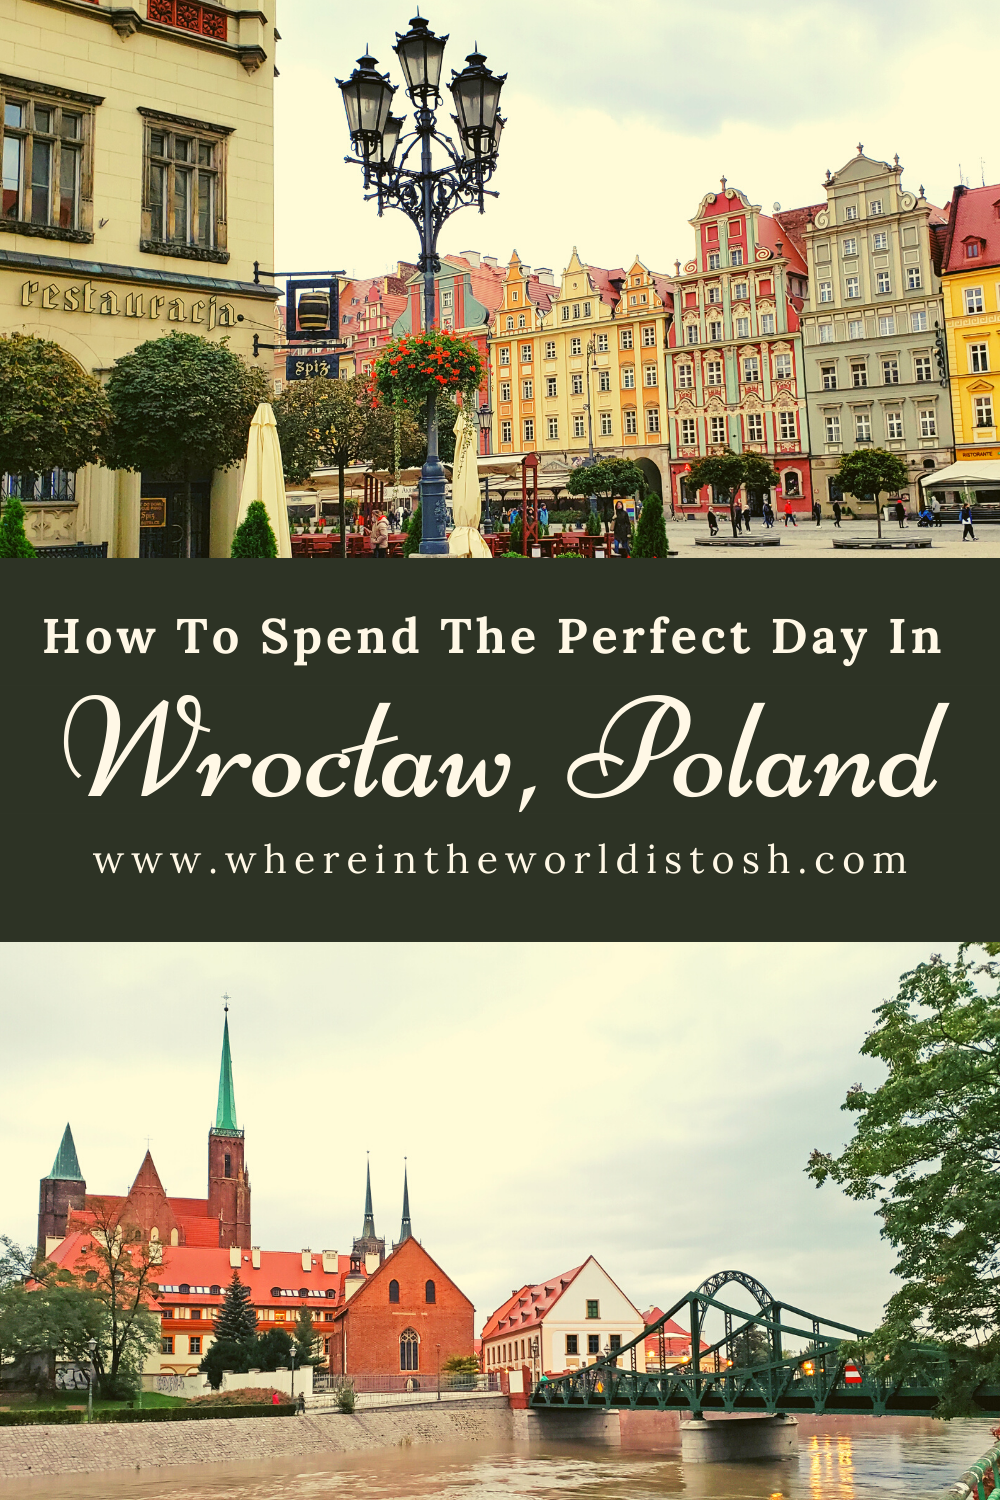 How To Spend The Perfect Day In Wroclaw Poland